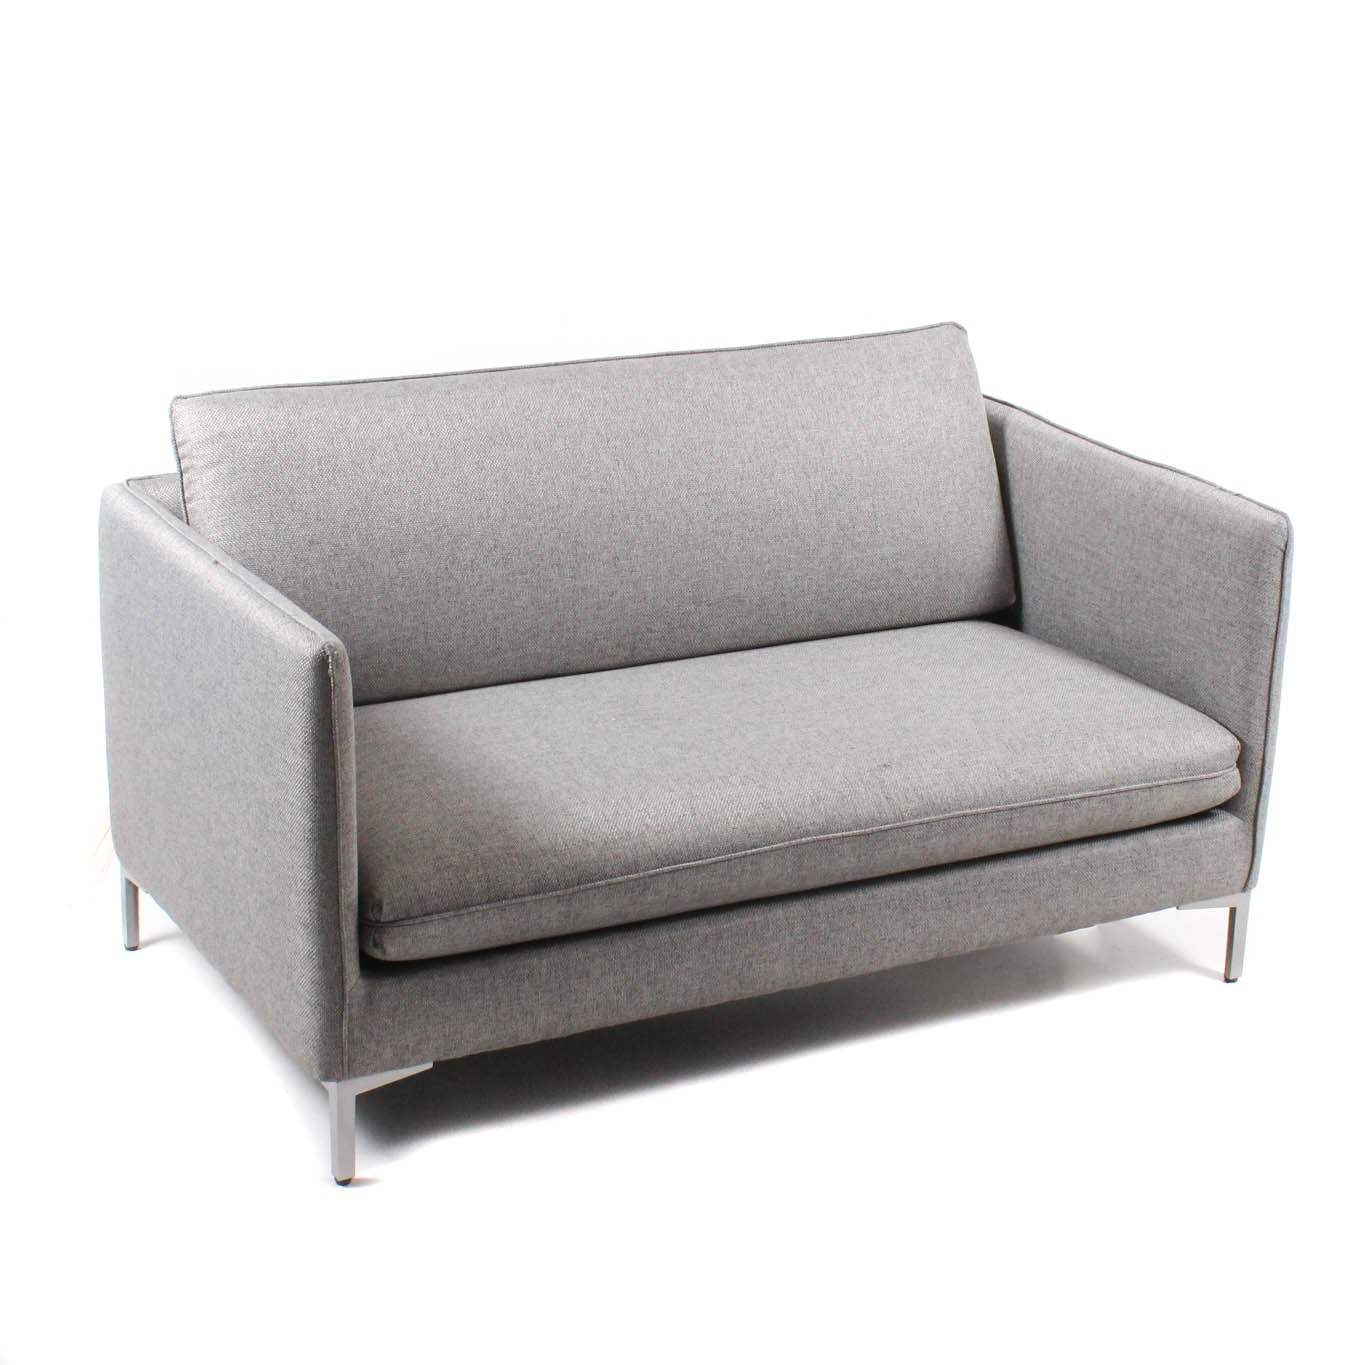 Contemporary Mid Century Modern Style Loveseat by CB2